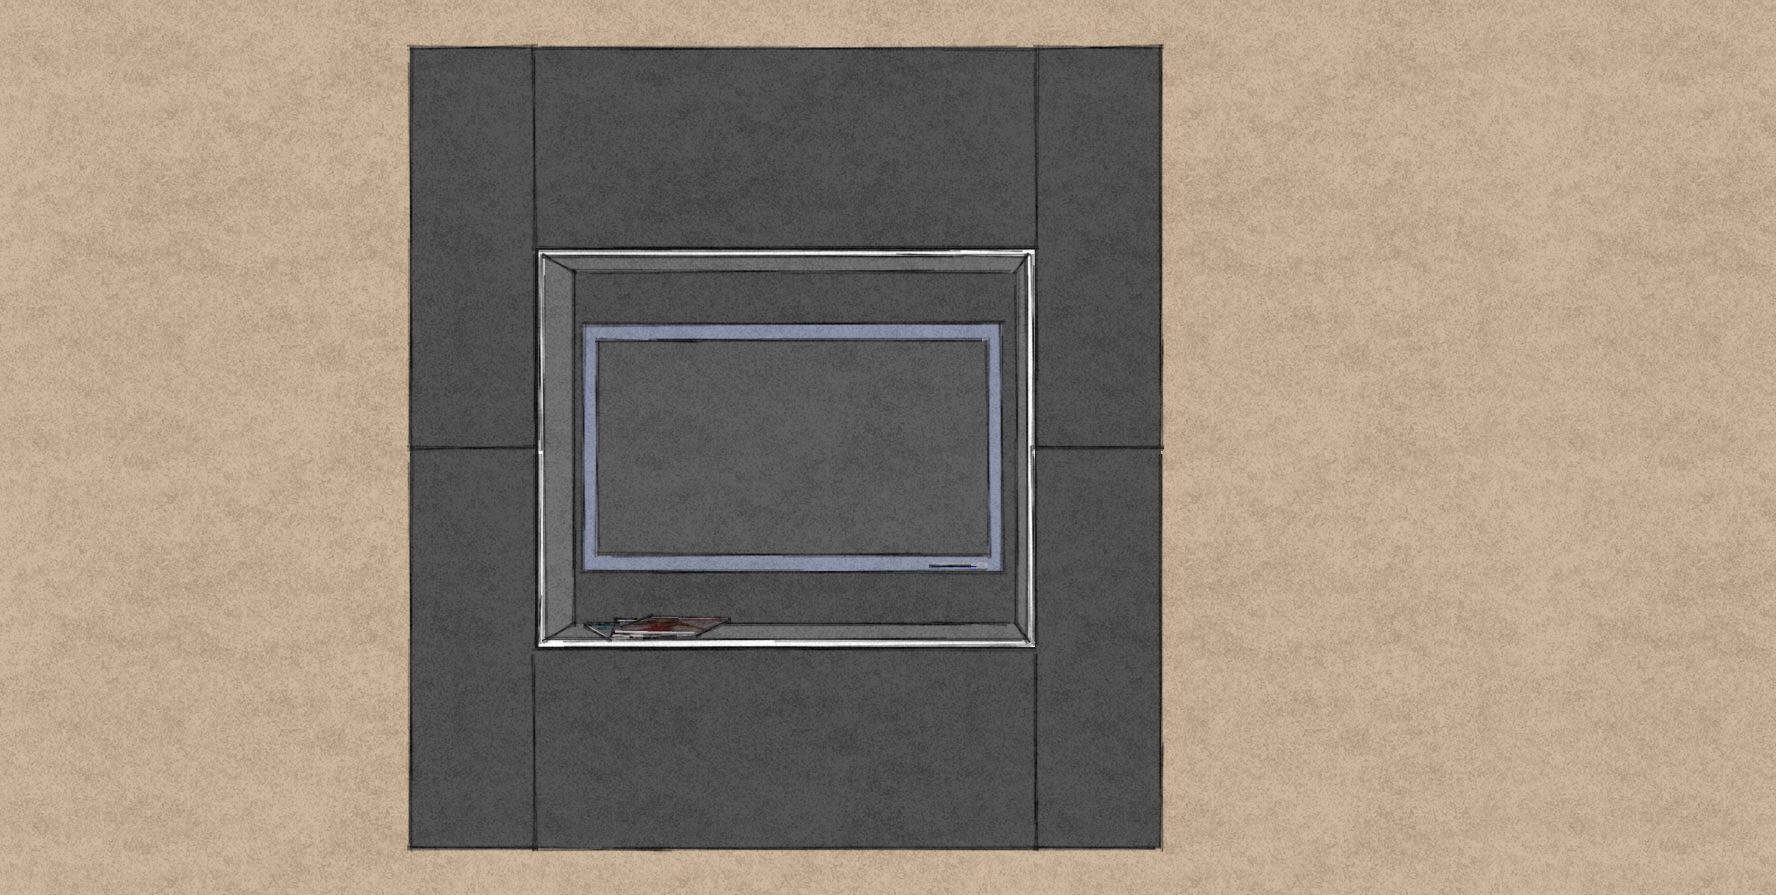 D6 square media wall design with grey cabinets and back panel.jpg